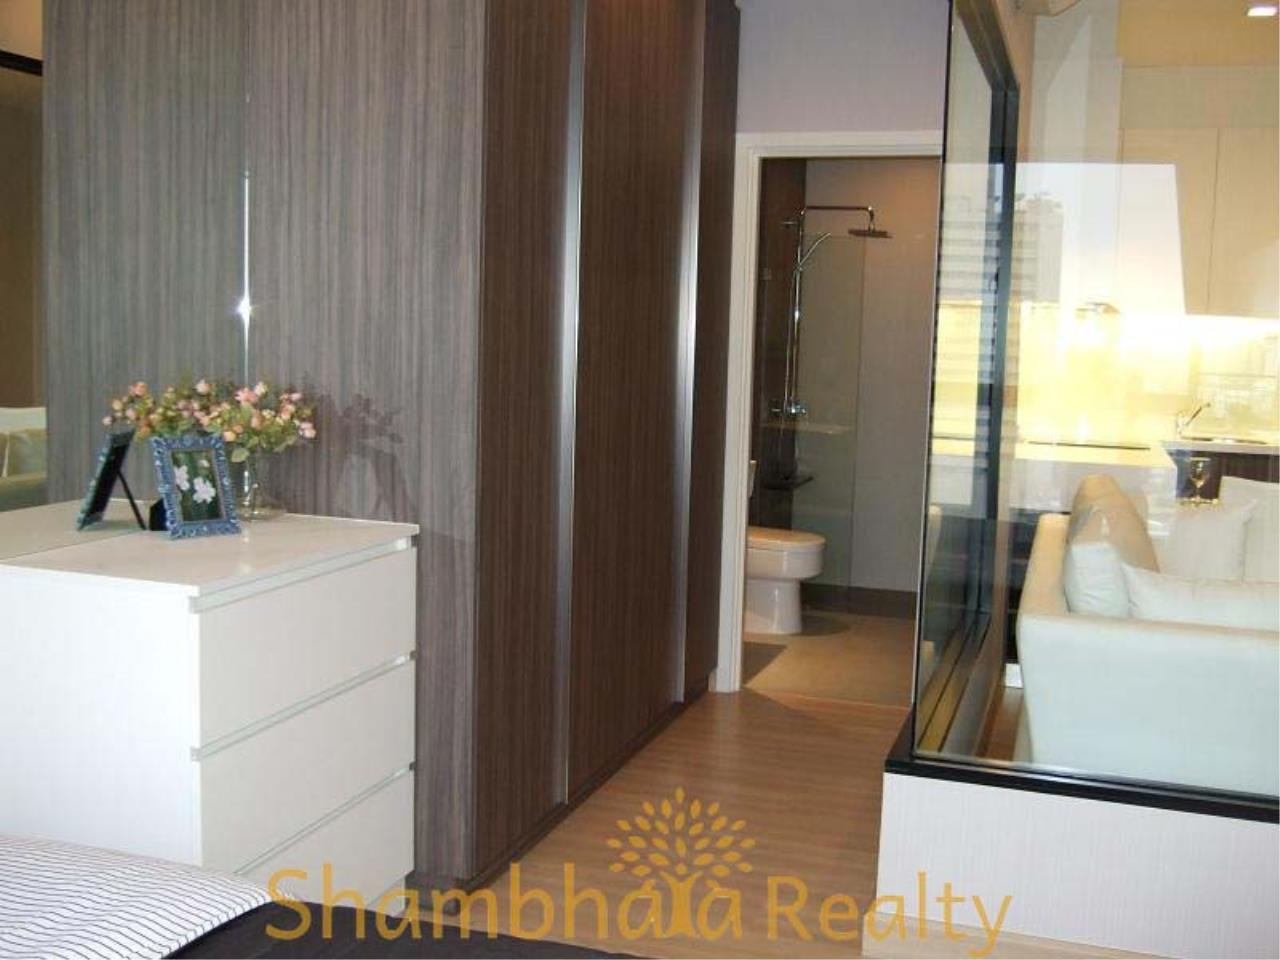 Shambhala Realty Agency's Urbano Absolute Sathon Taksin Condominium for Rent in Krung Thonburi 2